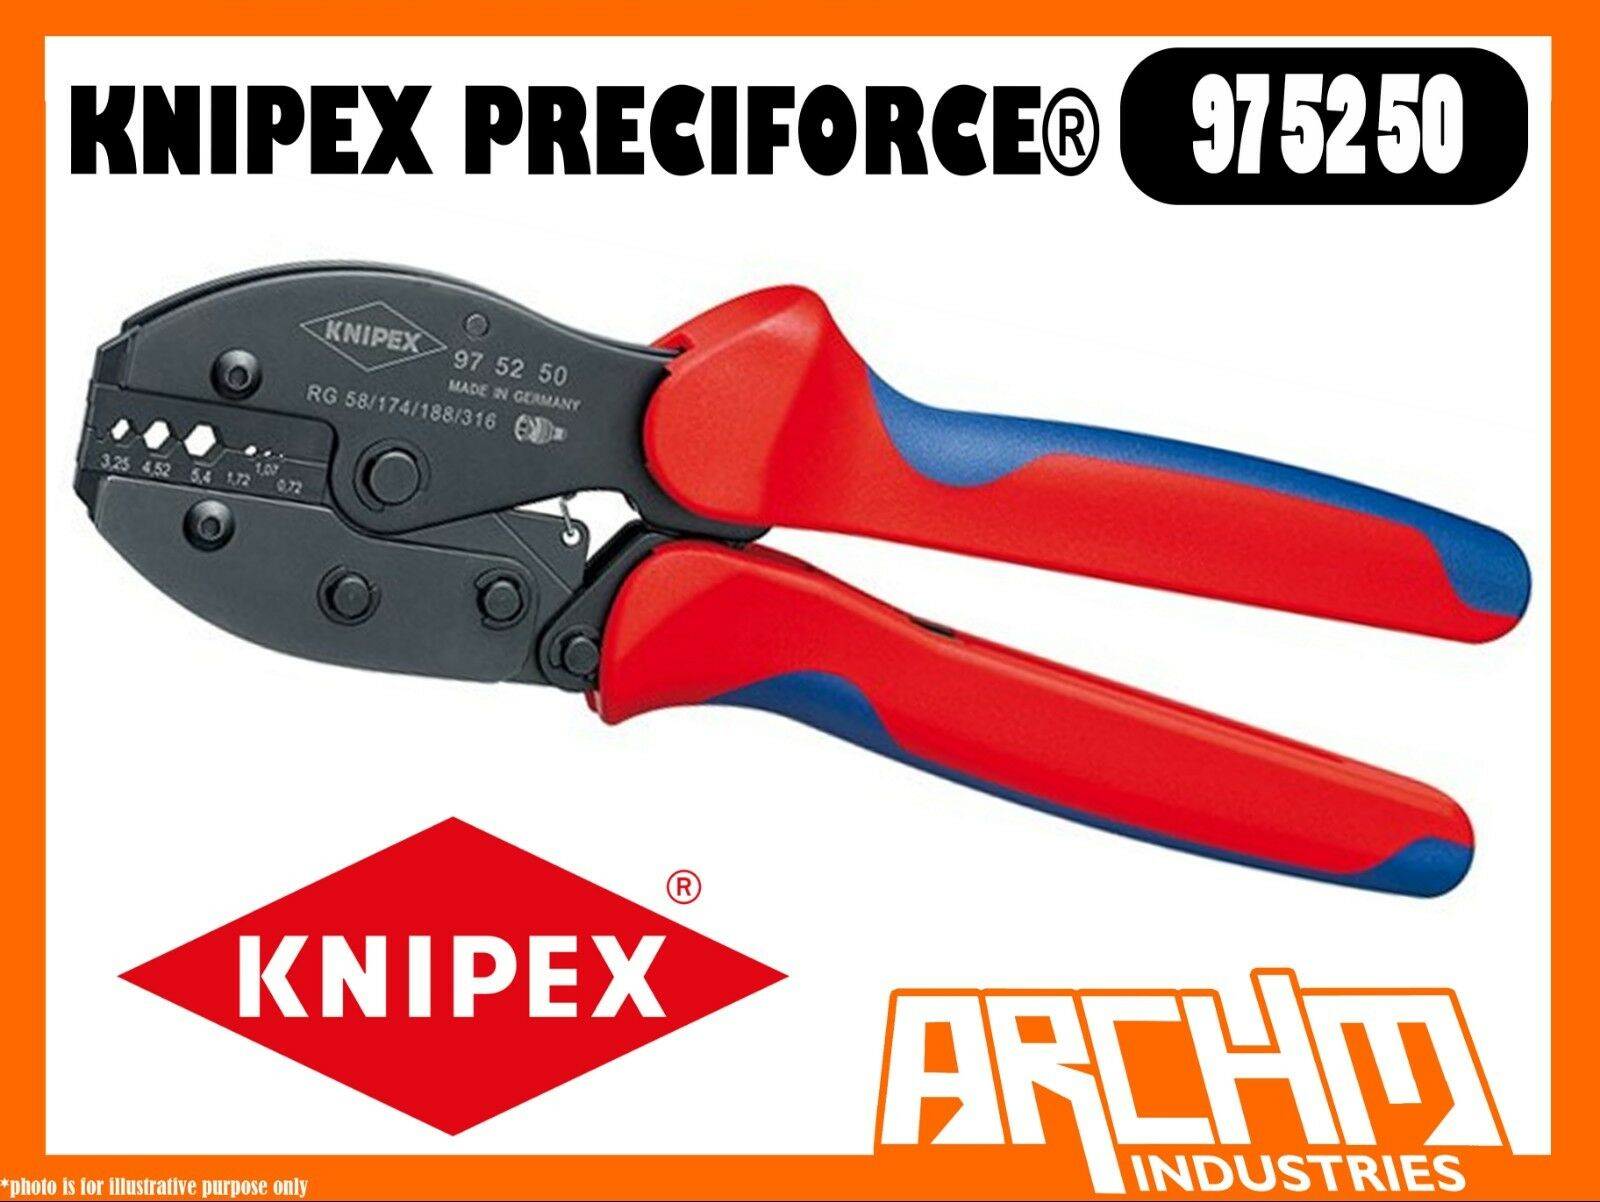 KNIPEX 975250 - PRECIFORCE CRIMPING PLIERS - 220MM - PRECISION DIES 6 POSITIONS